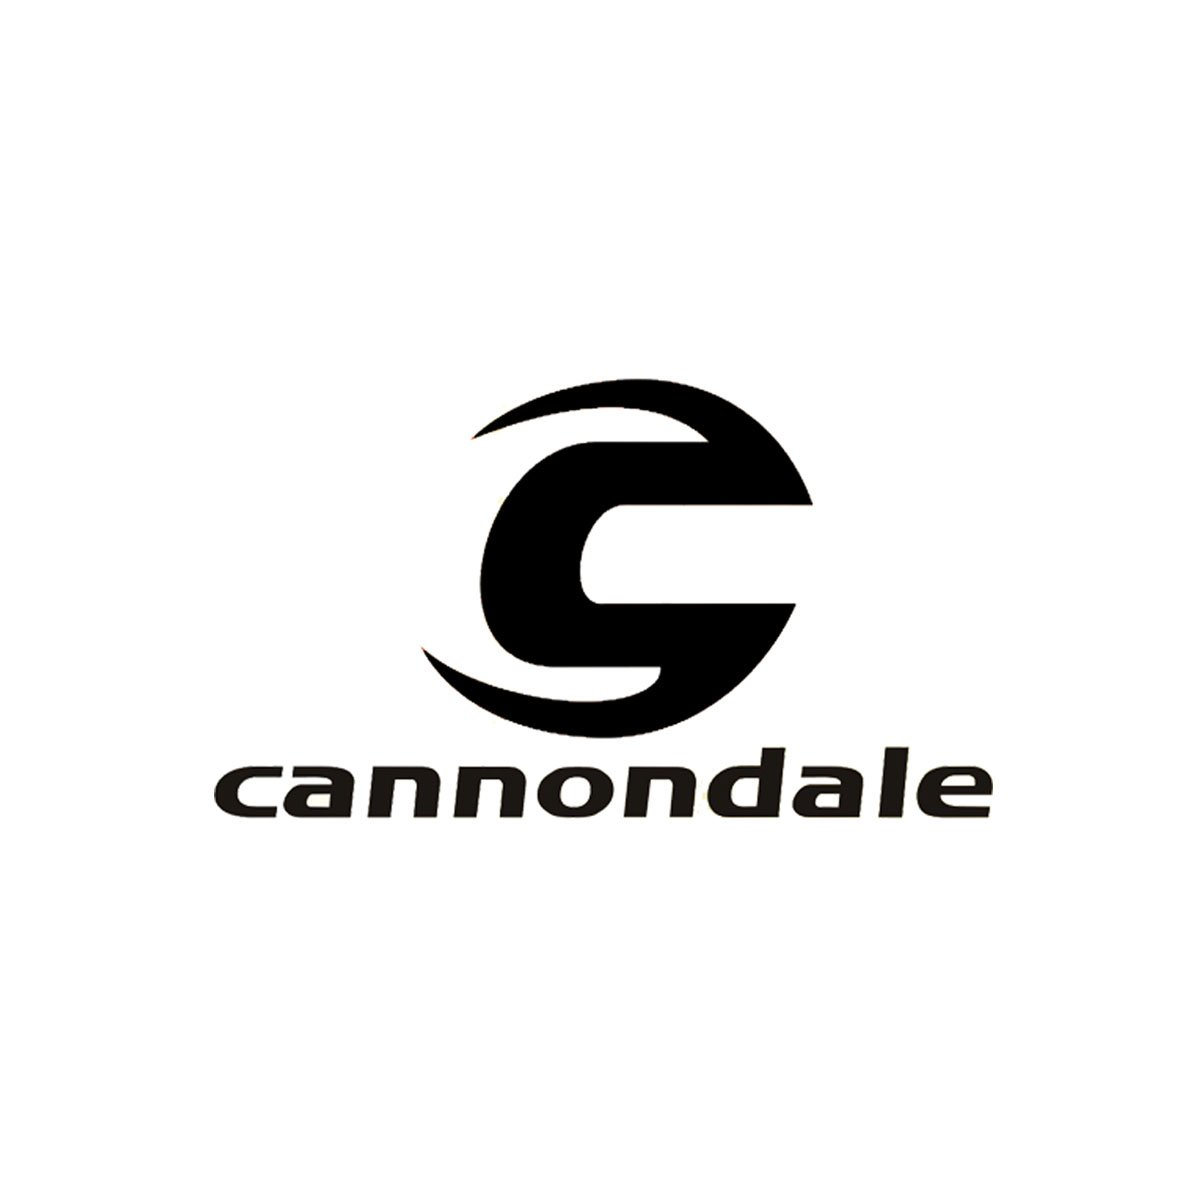 Cannondale 2017 26 X 1.75-2.125 inch Schrader Valve Bicycle Inner Tube - Box of 30 - CU43261702